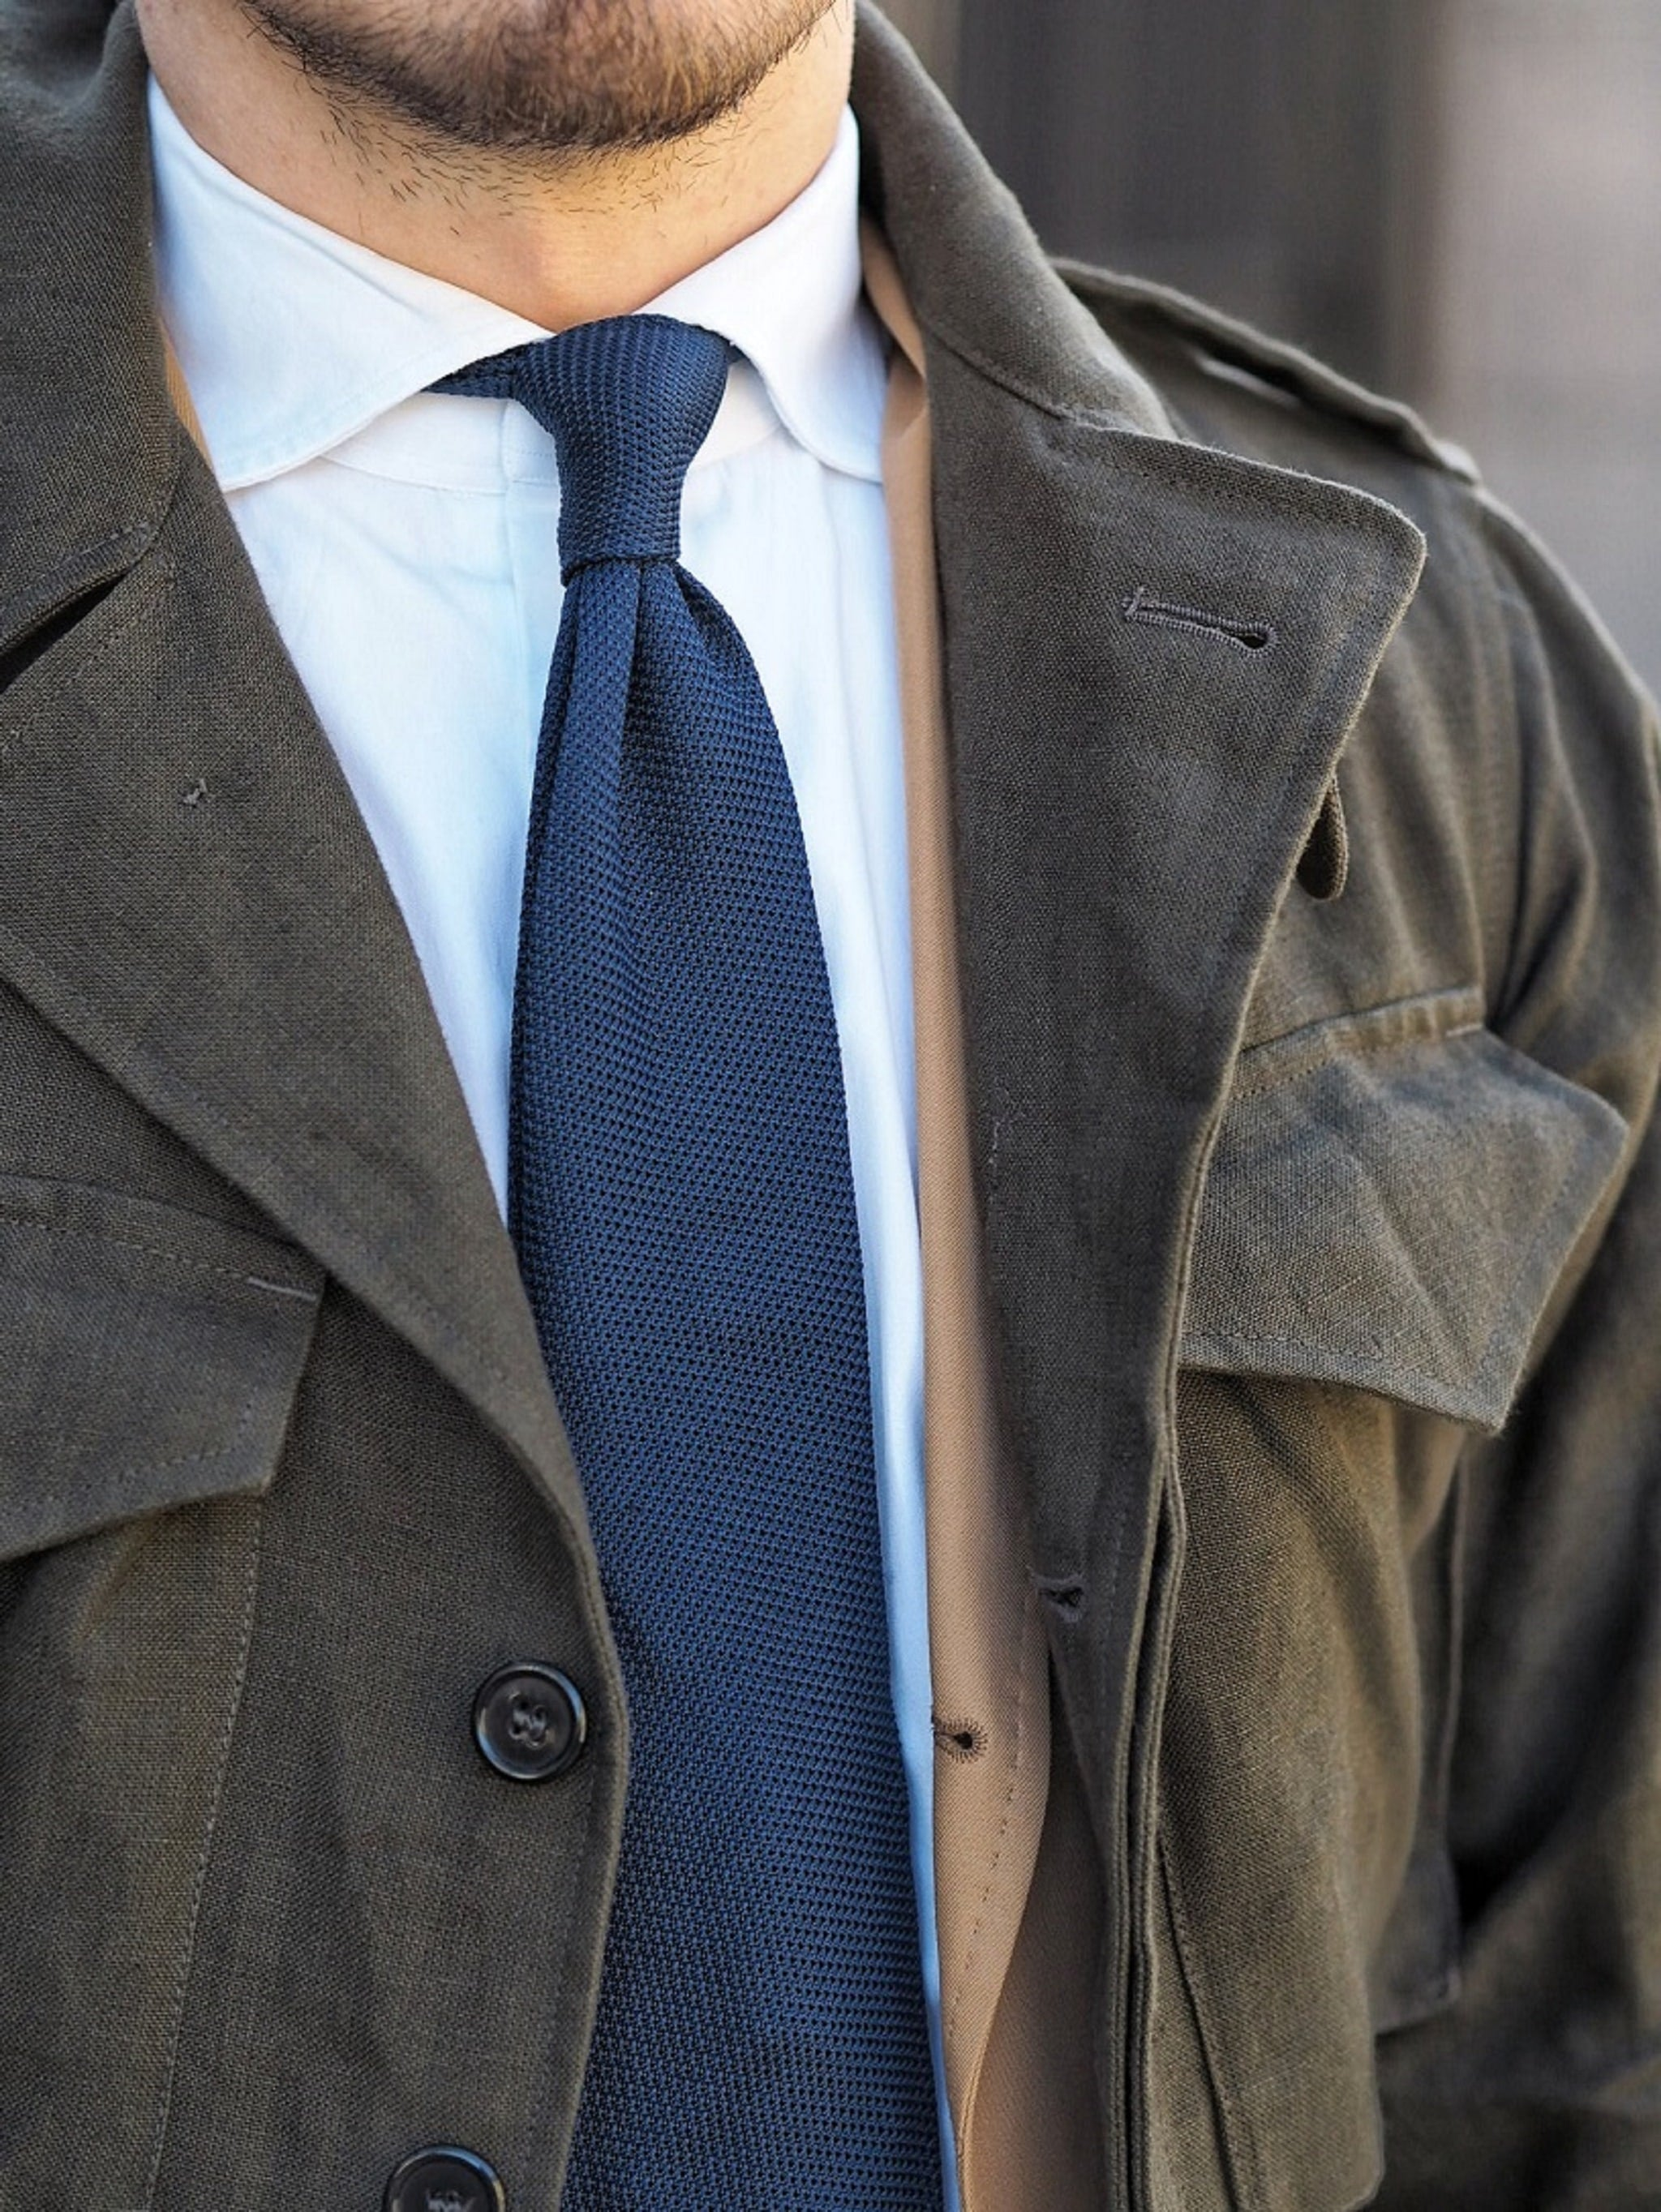 Olive-green-M43-jacket-with-suit-and-tie